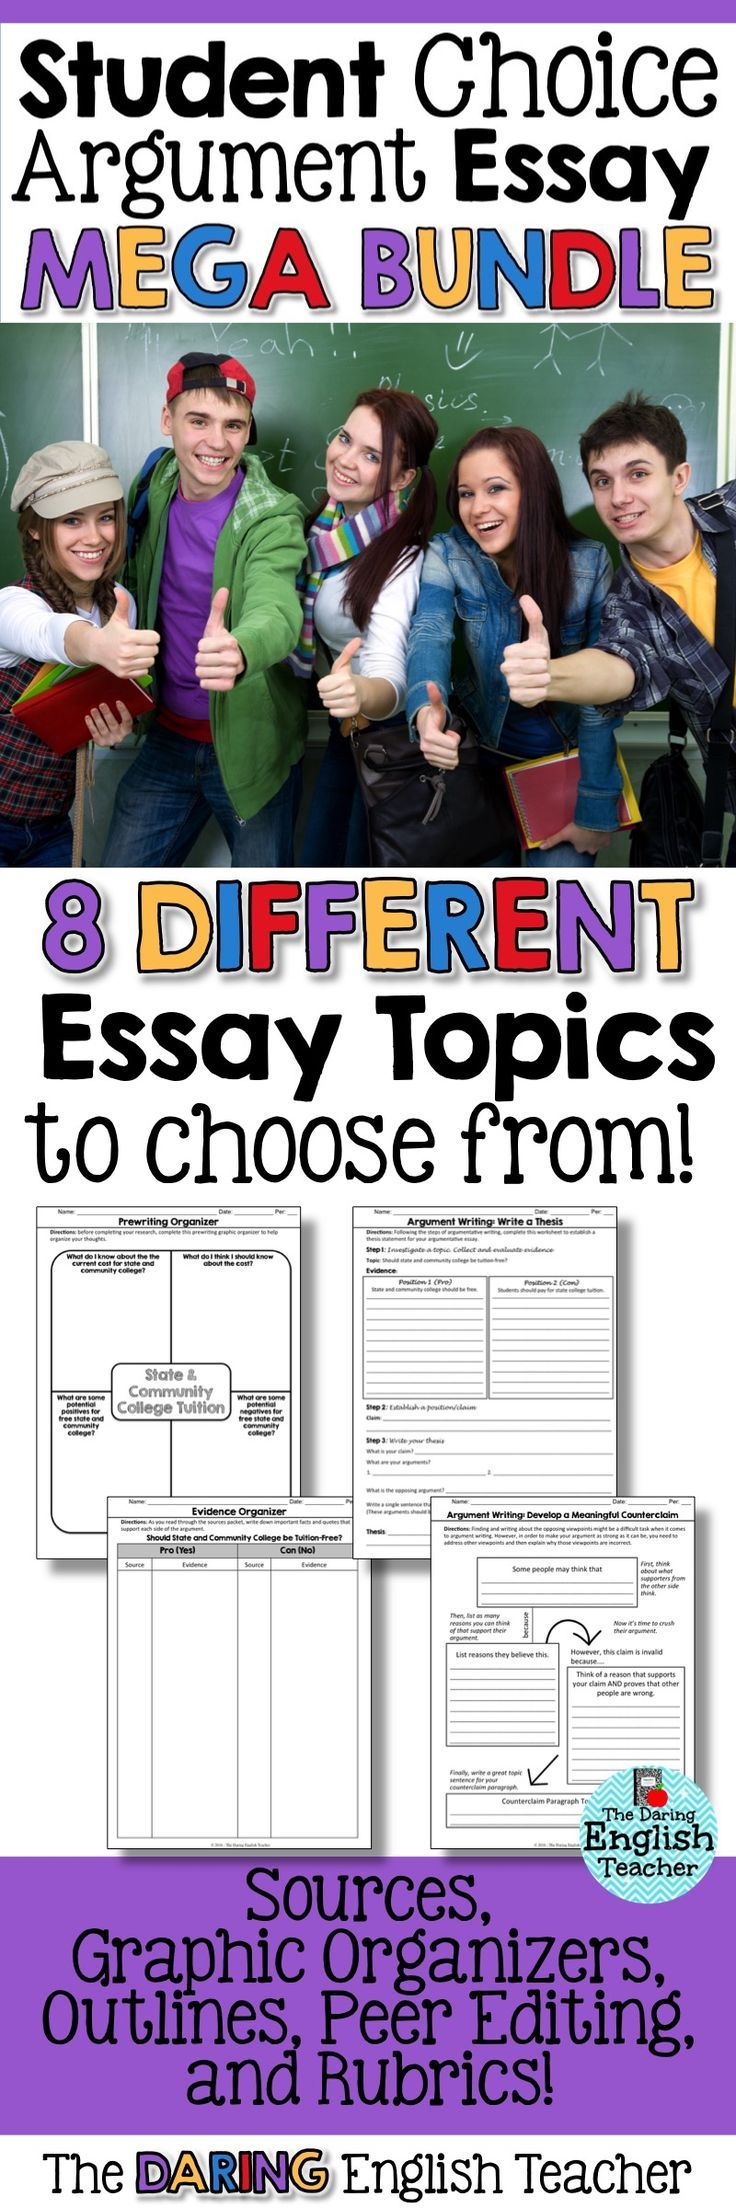 best argument writing middle school ideas argument essay unit student choice mega bundle